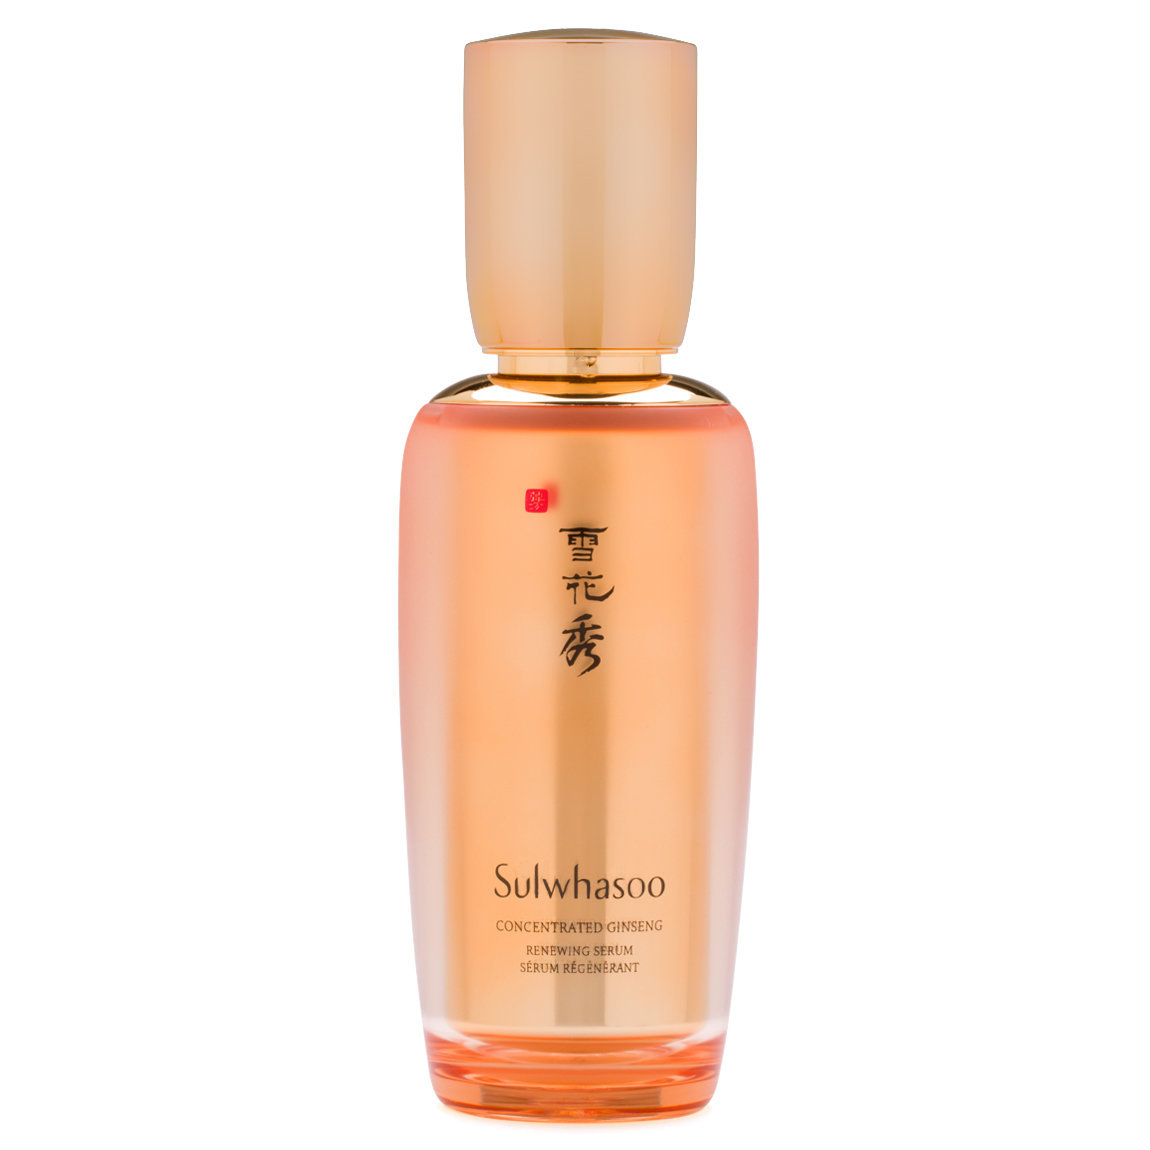 Sulwhasoo Concentrated Ginseng Renewing Serum product smear.